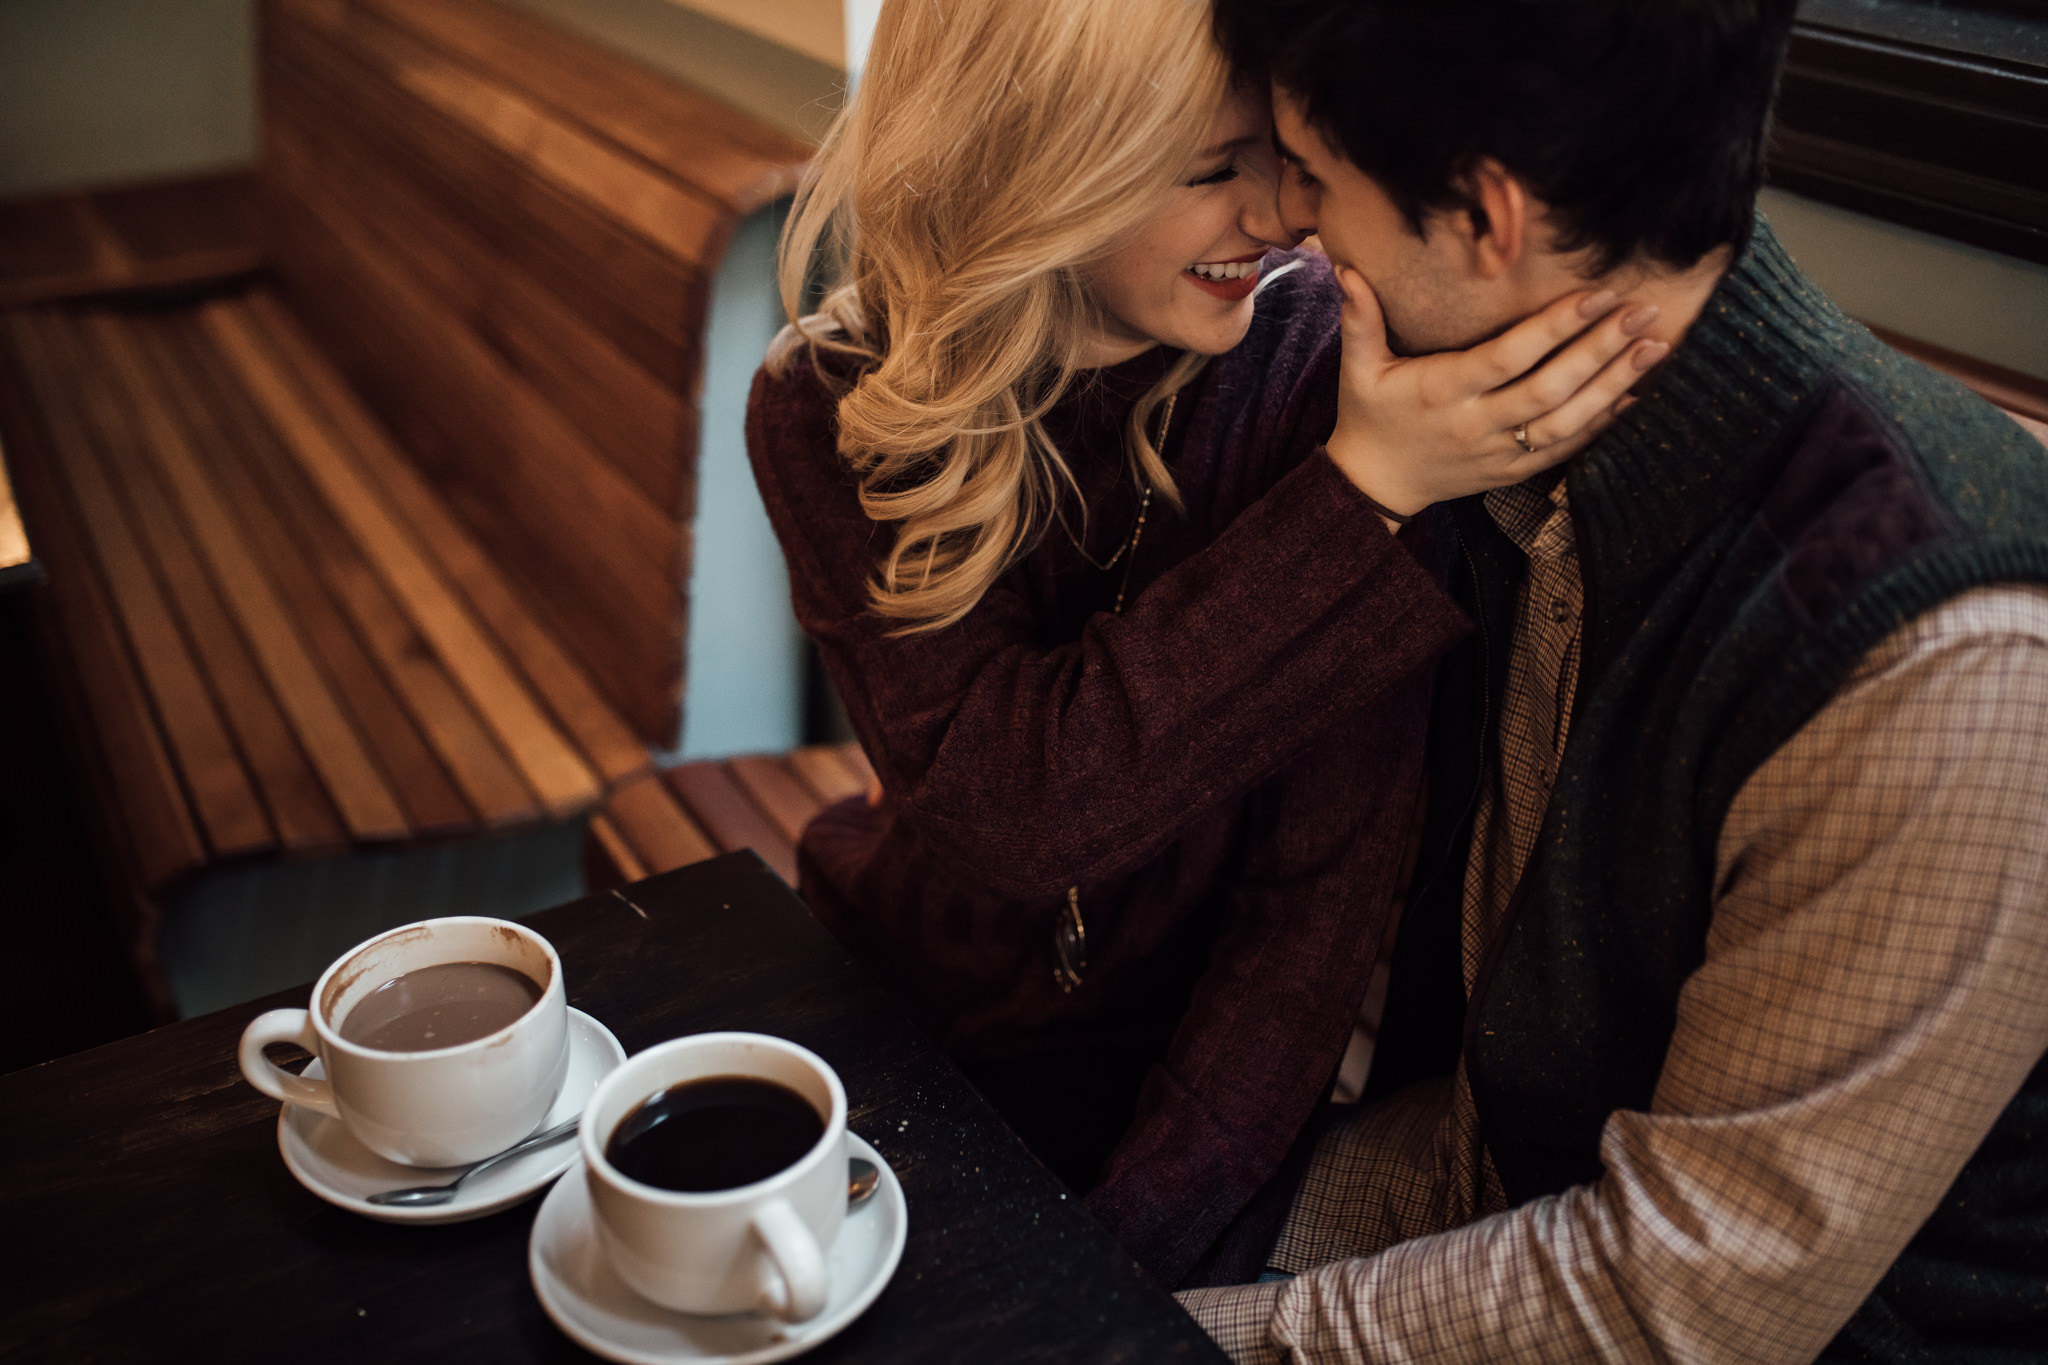 memphis-wedding-photographer-cassie-cook-photography-cafe-keough-engagement-photoshoot-coffee-engagement-19.jpg